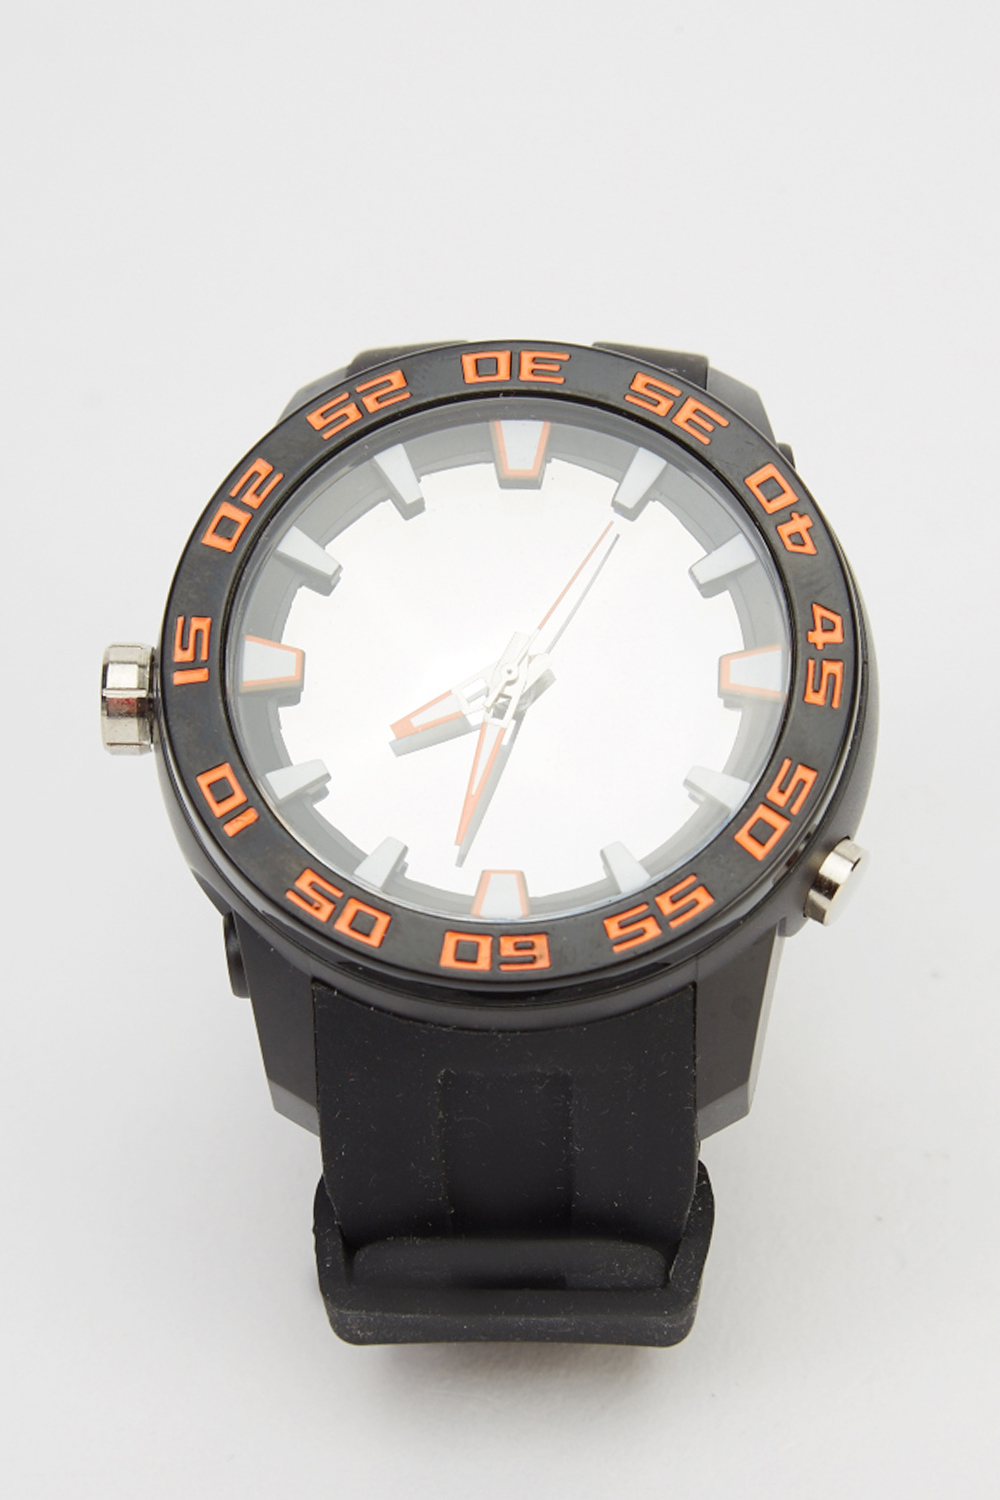 Led Light Up Watch Just 163 5